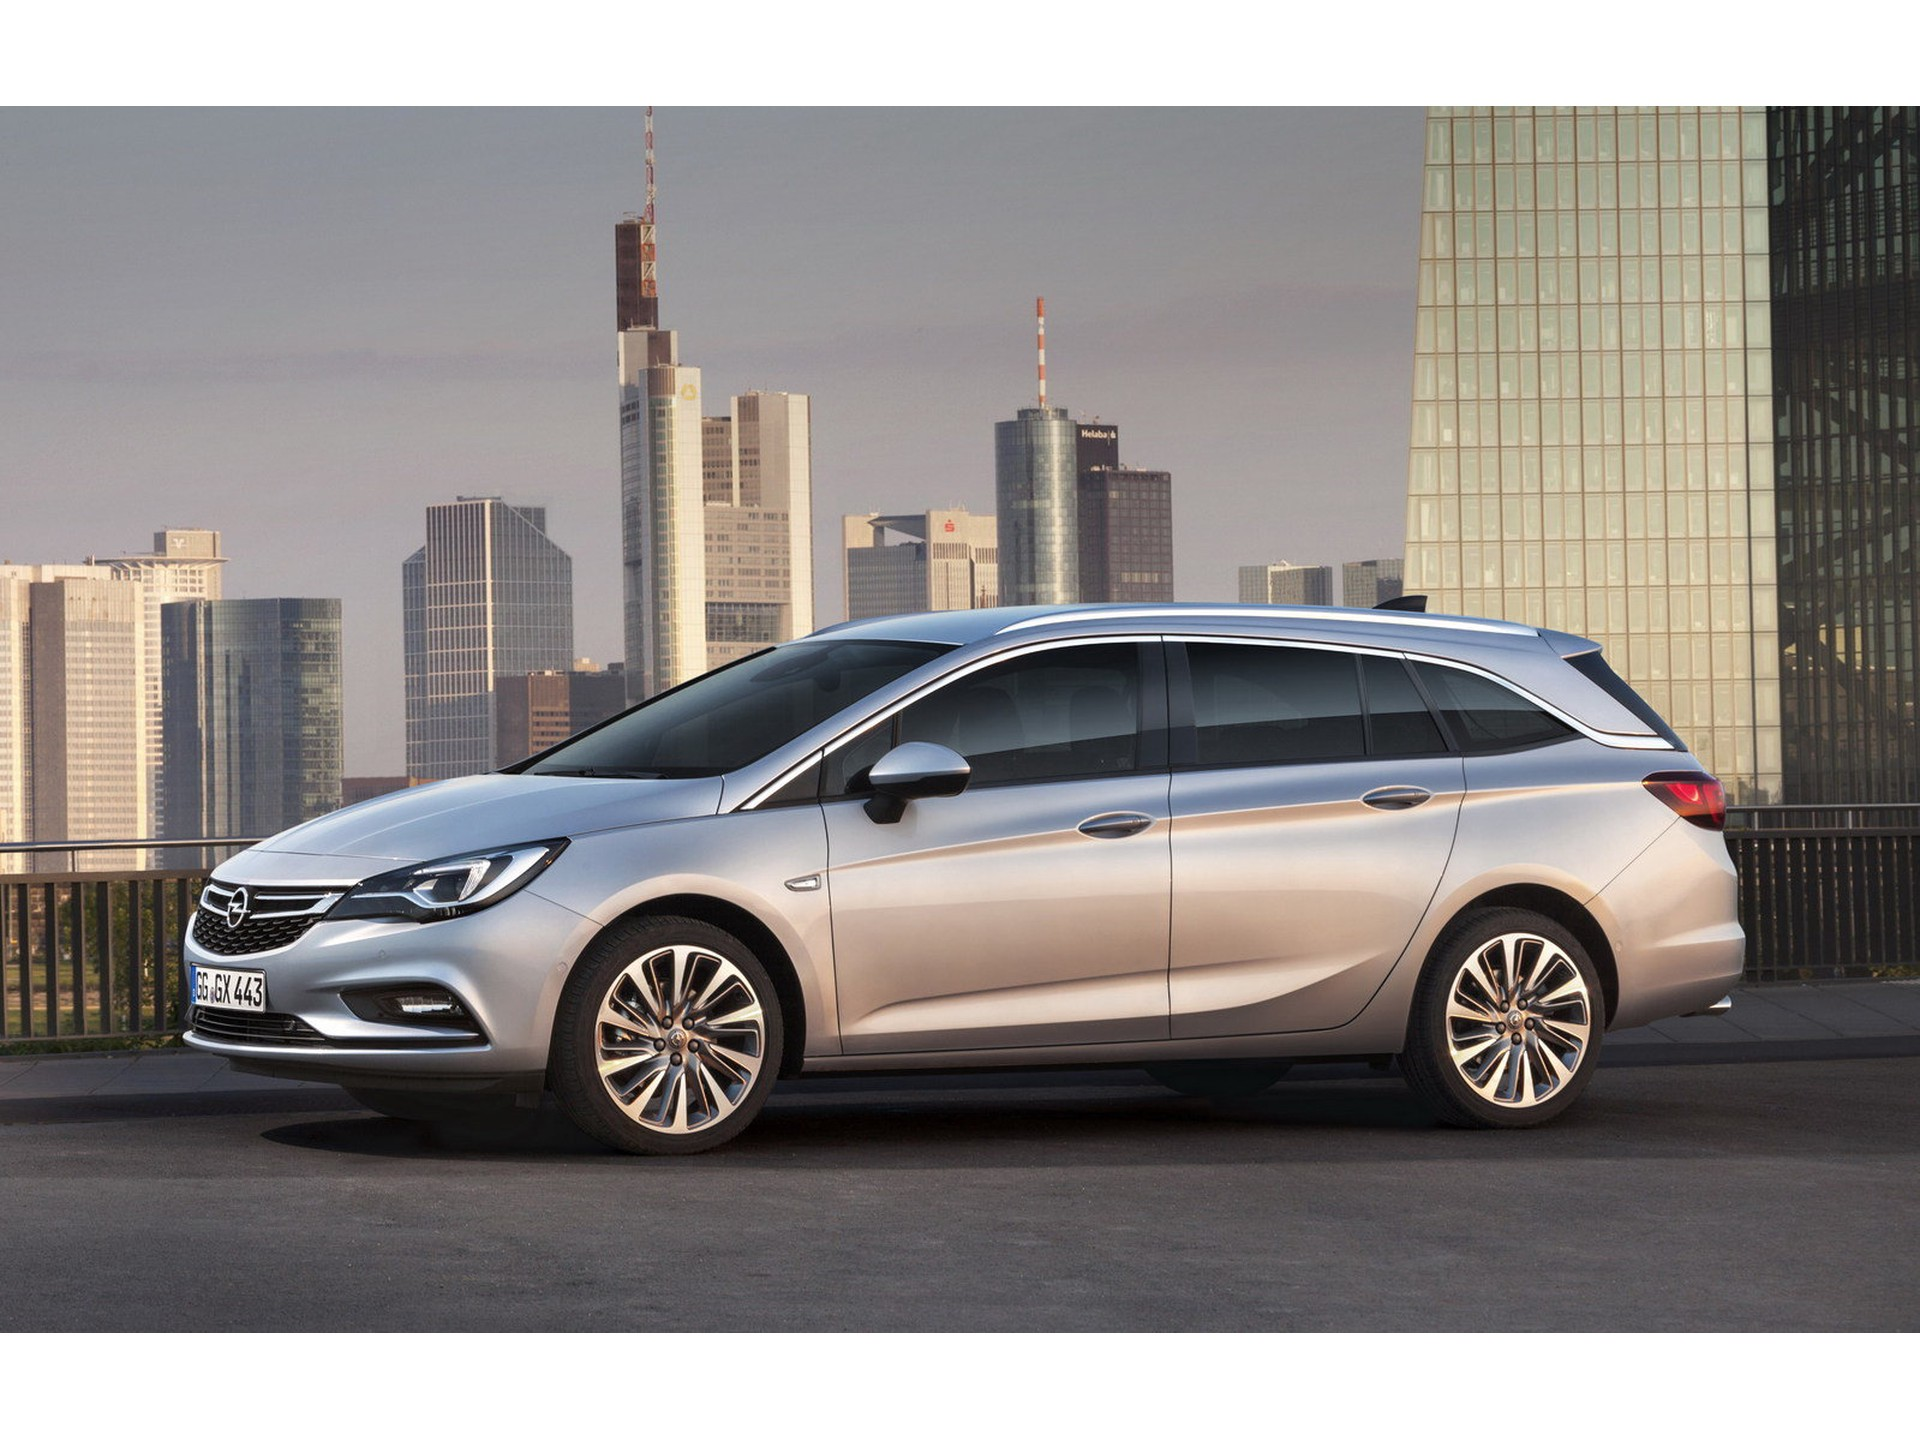 Opel-Astra-Sports Tourer 1.0 Business+-nieuweautodeal.nl